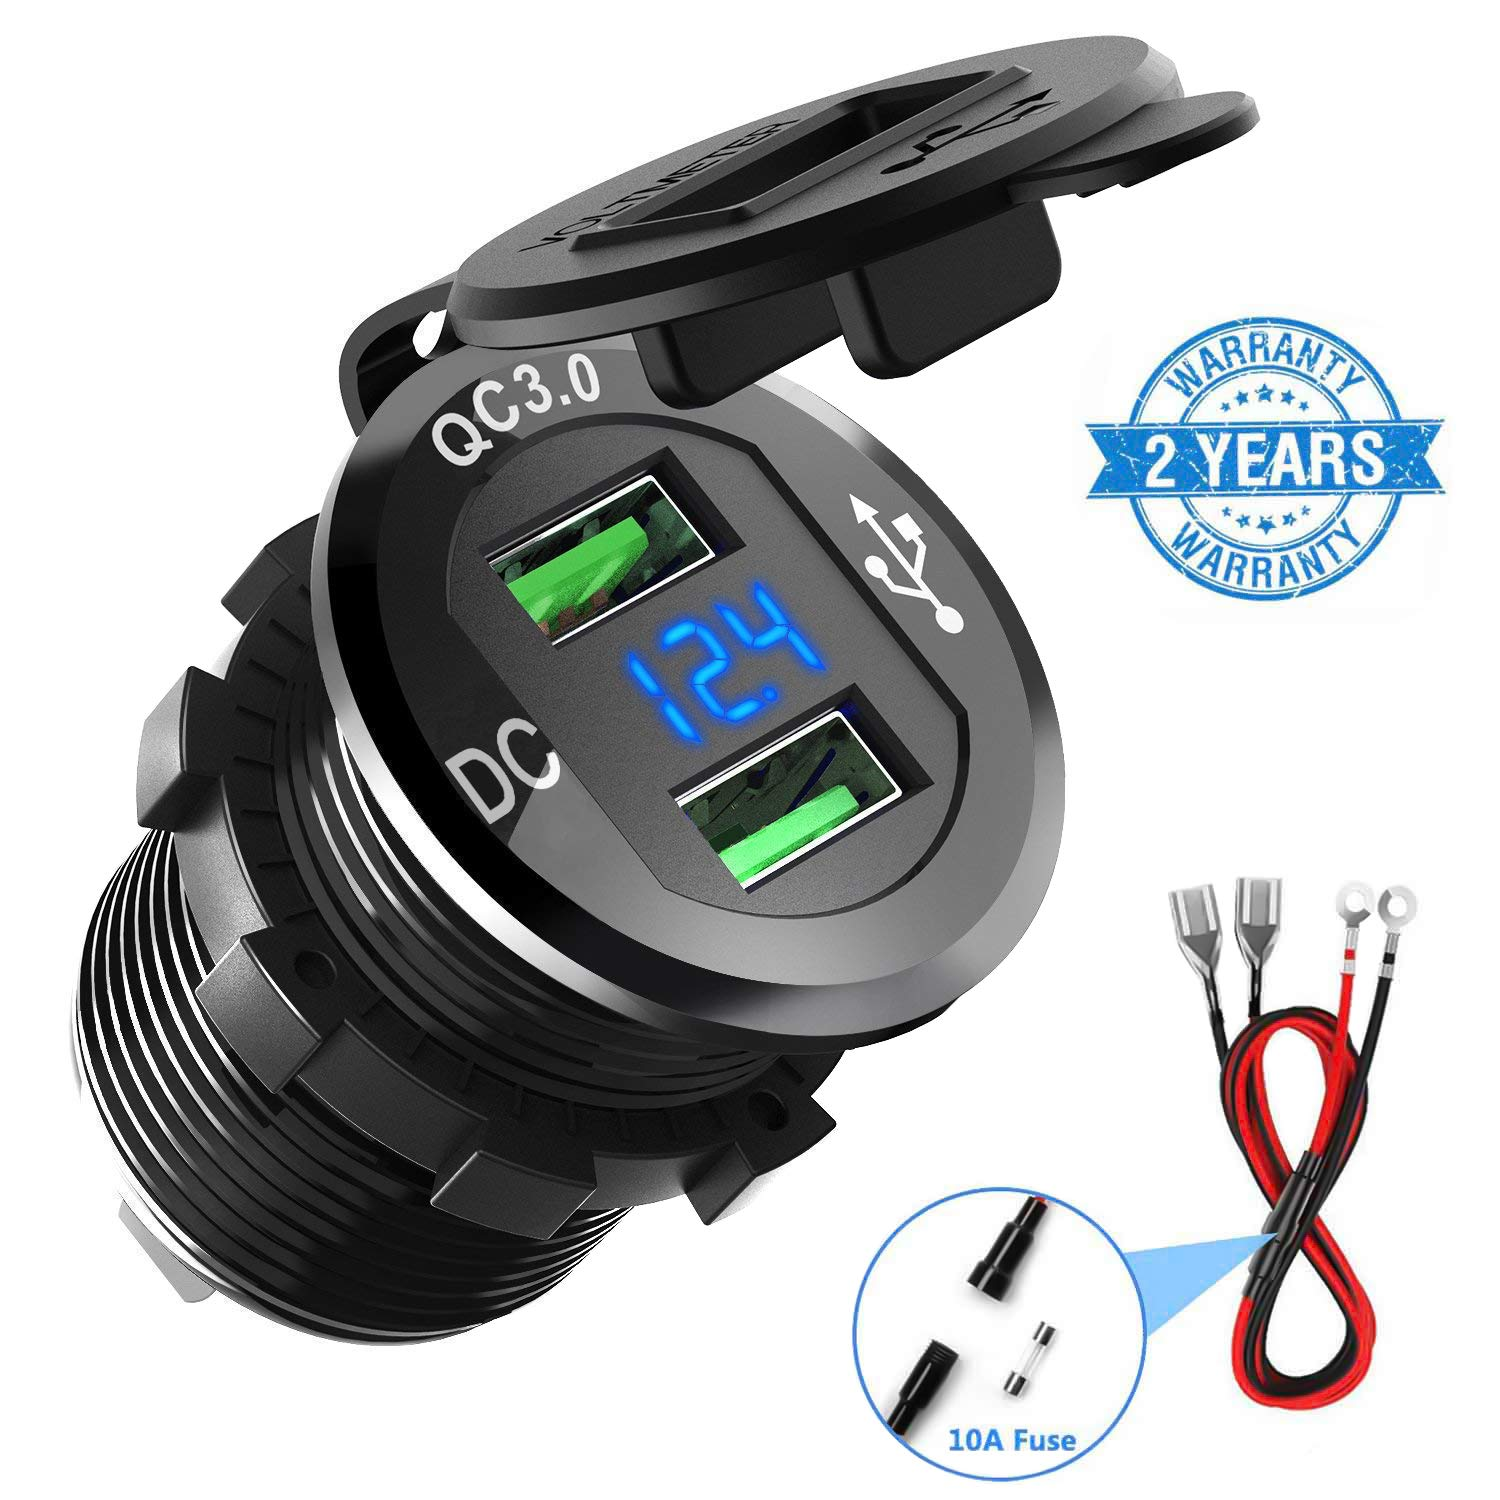 Quick Charge 3.0 Car Charger, CHGeek 12V/24V 36W Aluminum Waterproof Dual QC3.0 USB Fast Charger Socket Power Outlet with LED Digital Voltmeter for ...